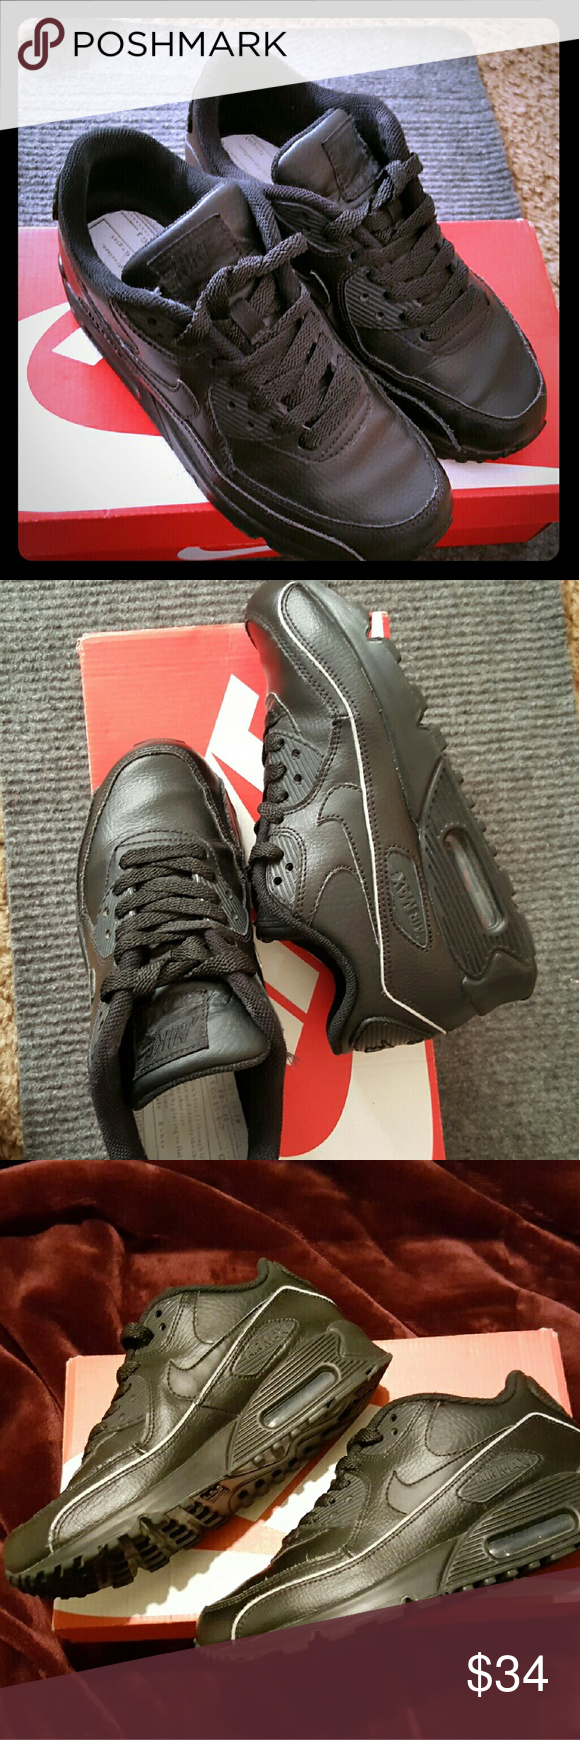 Nike Air Max Blk. Sz.6 Very good condition 8/10 All black leather. Mild signs of ware,some creasing, shown on pics. No stains or worn leather.  New sole inserts. 4.5y Sz.6 womens Nike Shoes Athletic Shoes